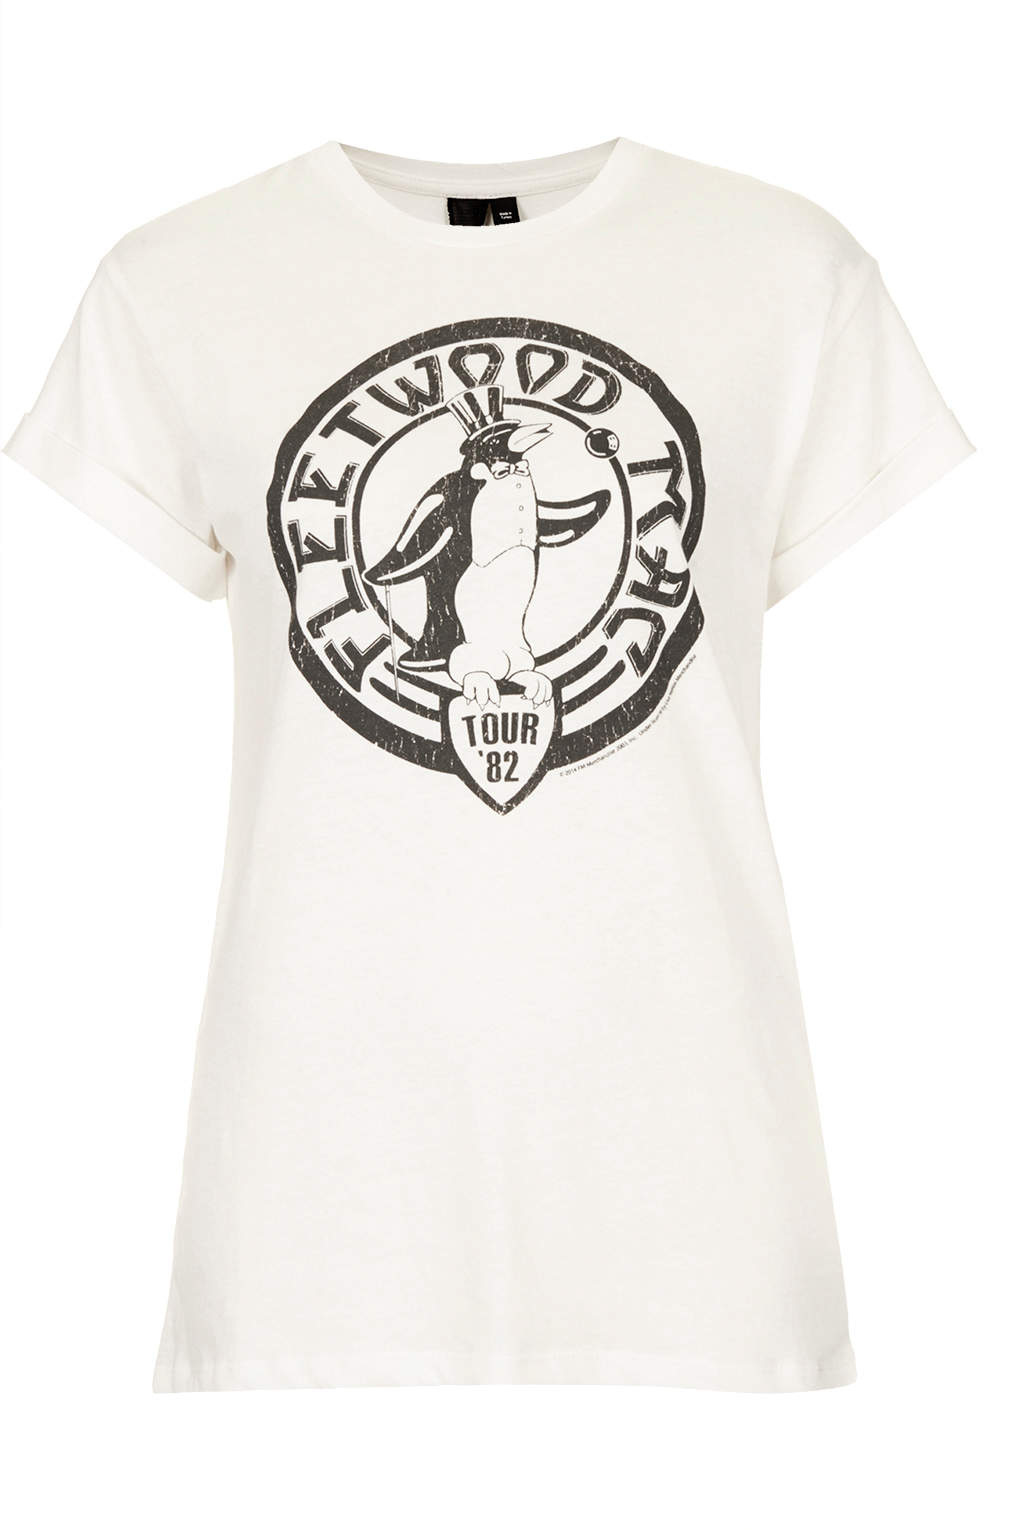 Topshop Fleetwood Mac Tee By And Finally In White Lyst